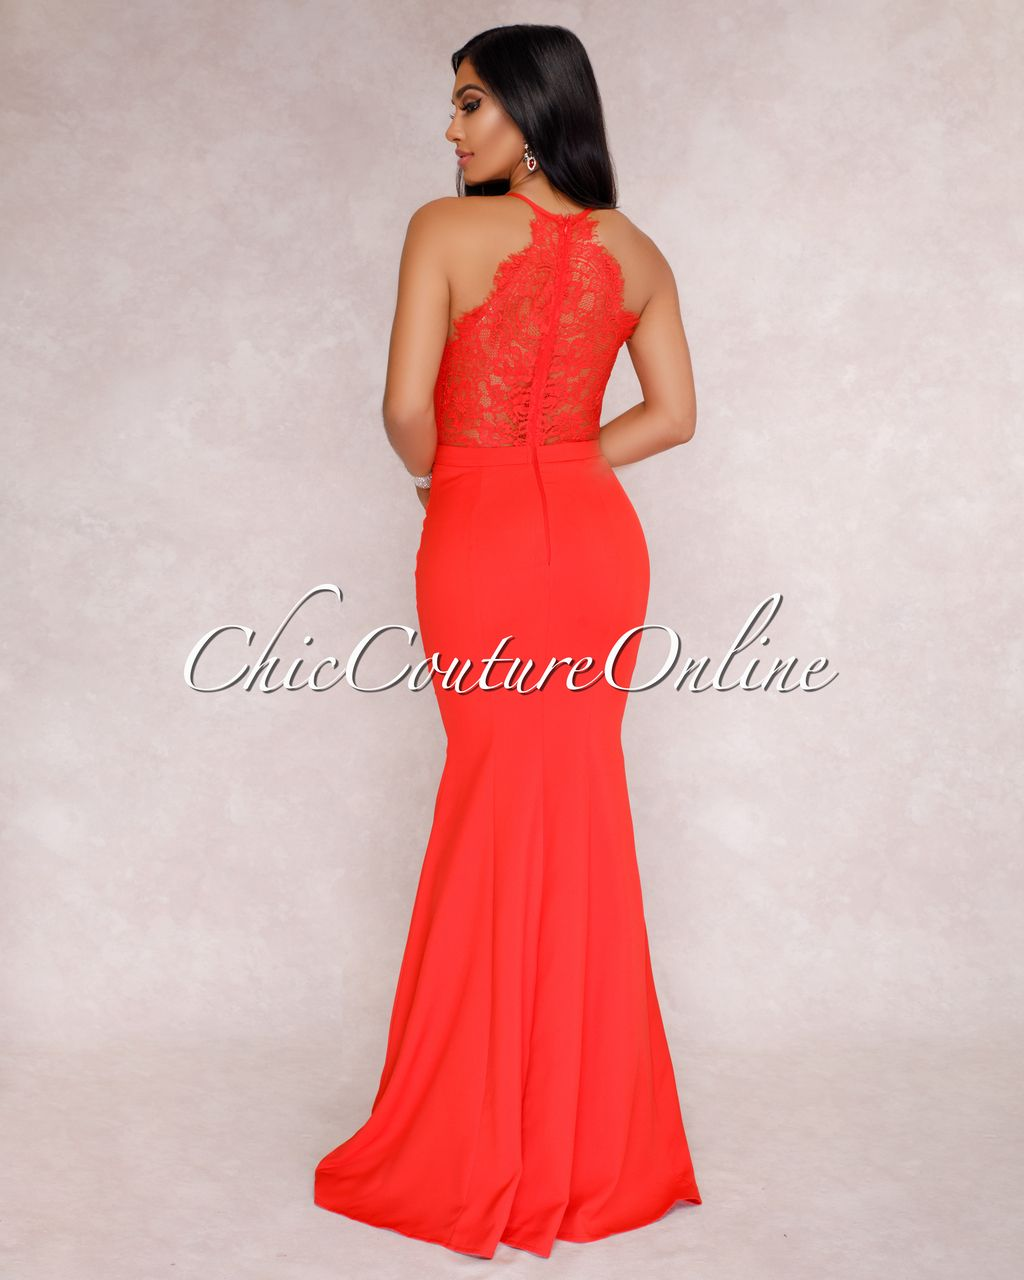 Chic Couture Online Venus Coral Red Lace Back Maxi Dress Http